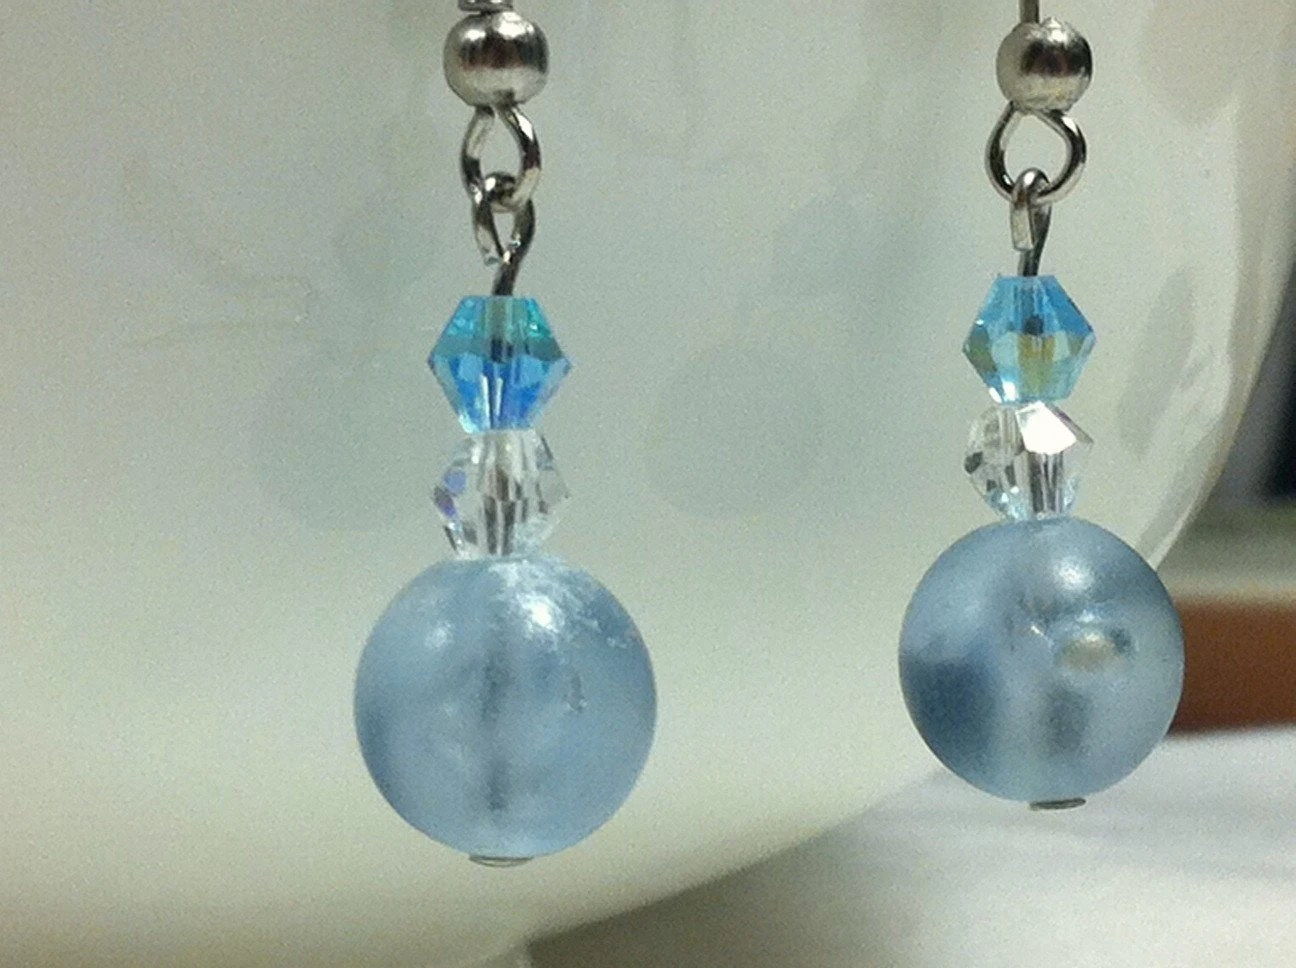 Blue Earrings, Icy Pale Blue, Plastic and Crystal Beads, Winter Ice - Gift Idea, Ready to Ship